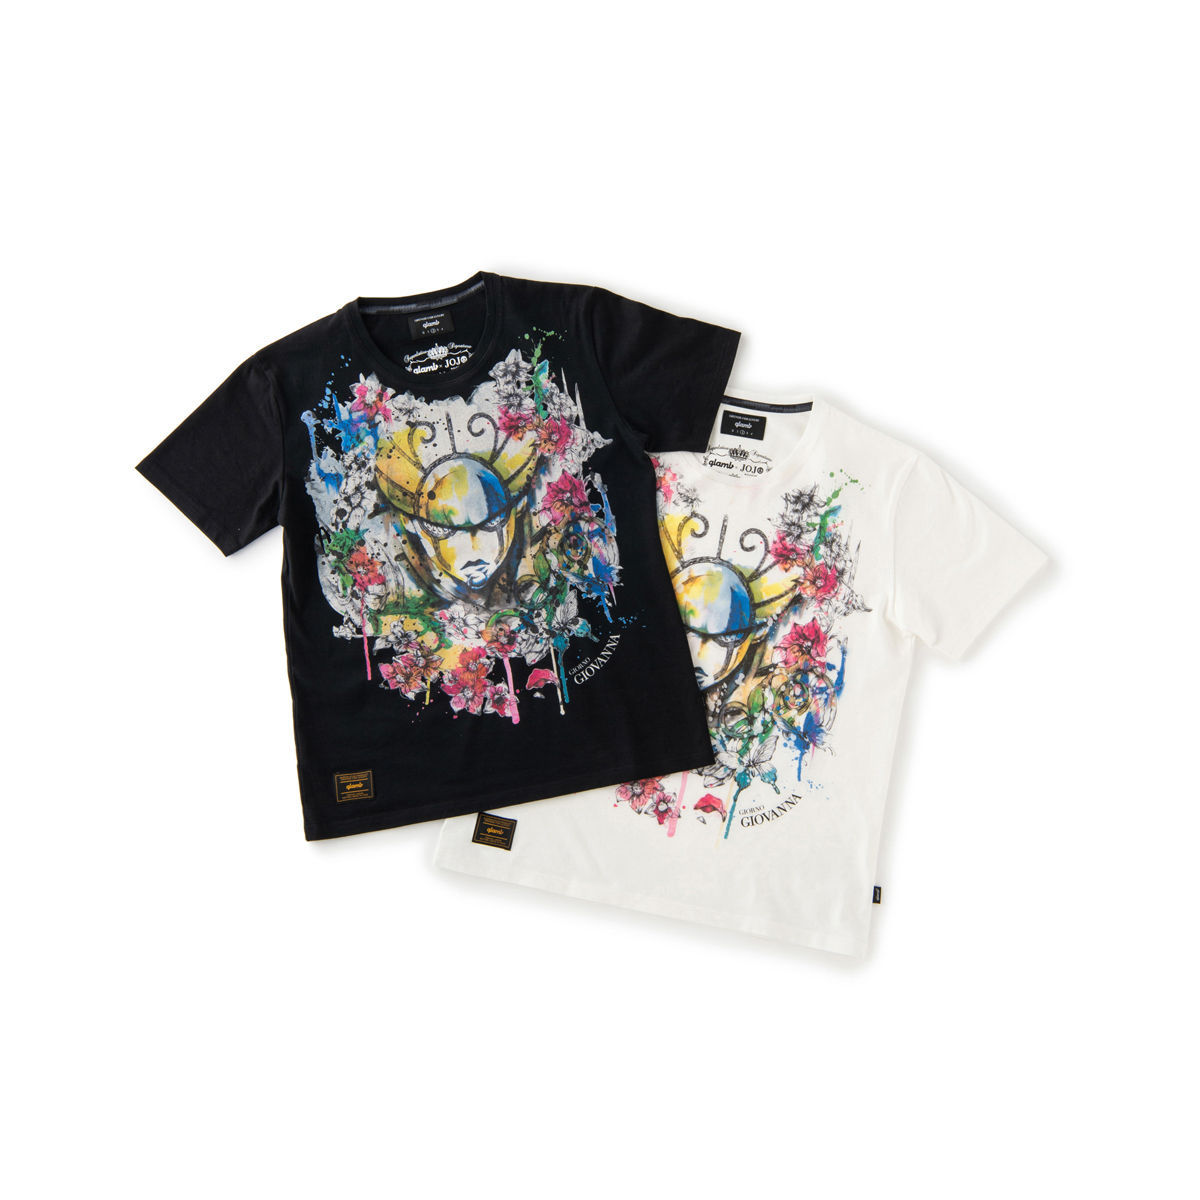 d32ea299c JoJo's Bizarre Adventure: Golden Wind × glamb collaboration T-shirt2